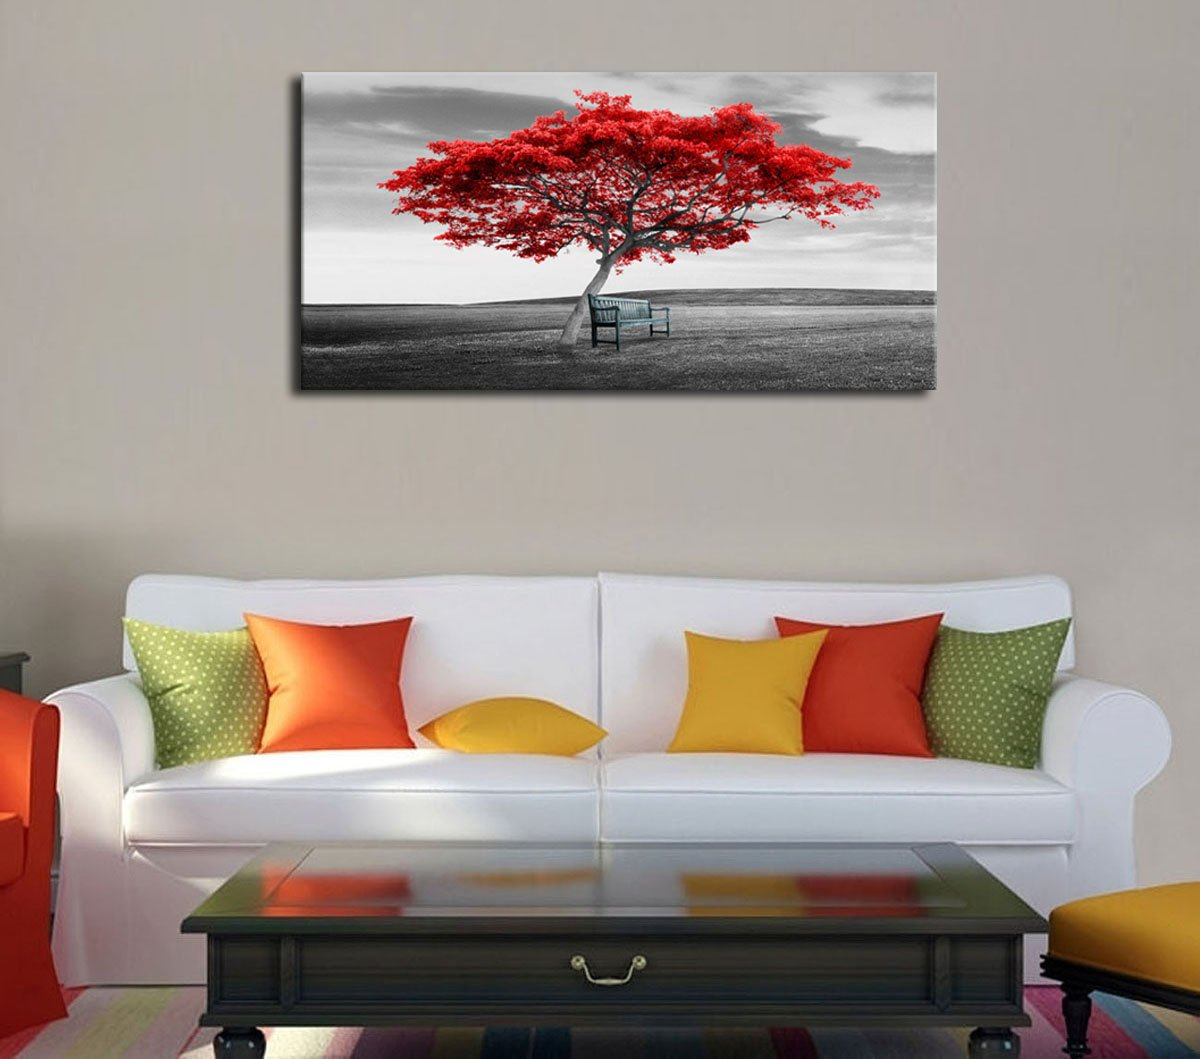 Canvas Wall Art Big Tree Red Leaf with Chair on Grass Wall Decor Modern Artwork Long Picture Prints Contemporary Painting Black and White Scenery for Living Room Bedroom Home Decoration 20 x 40